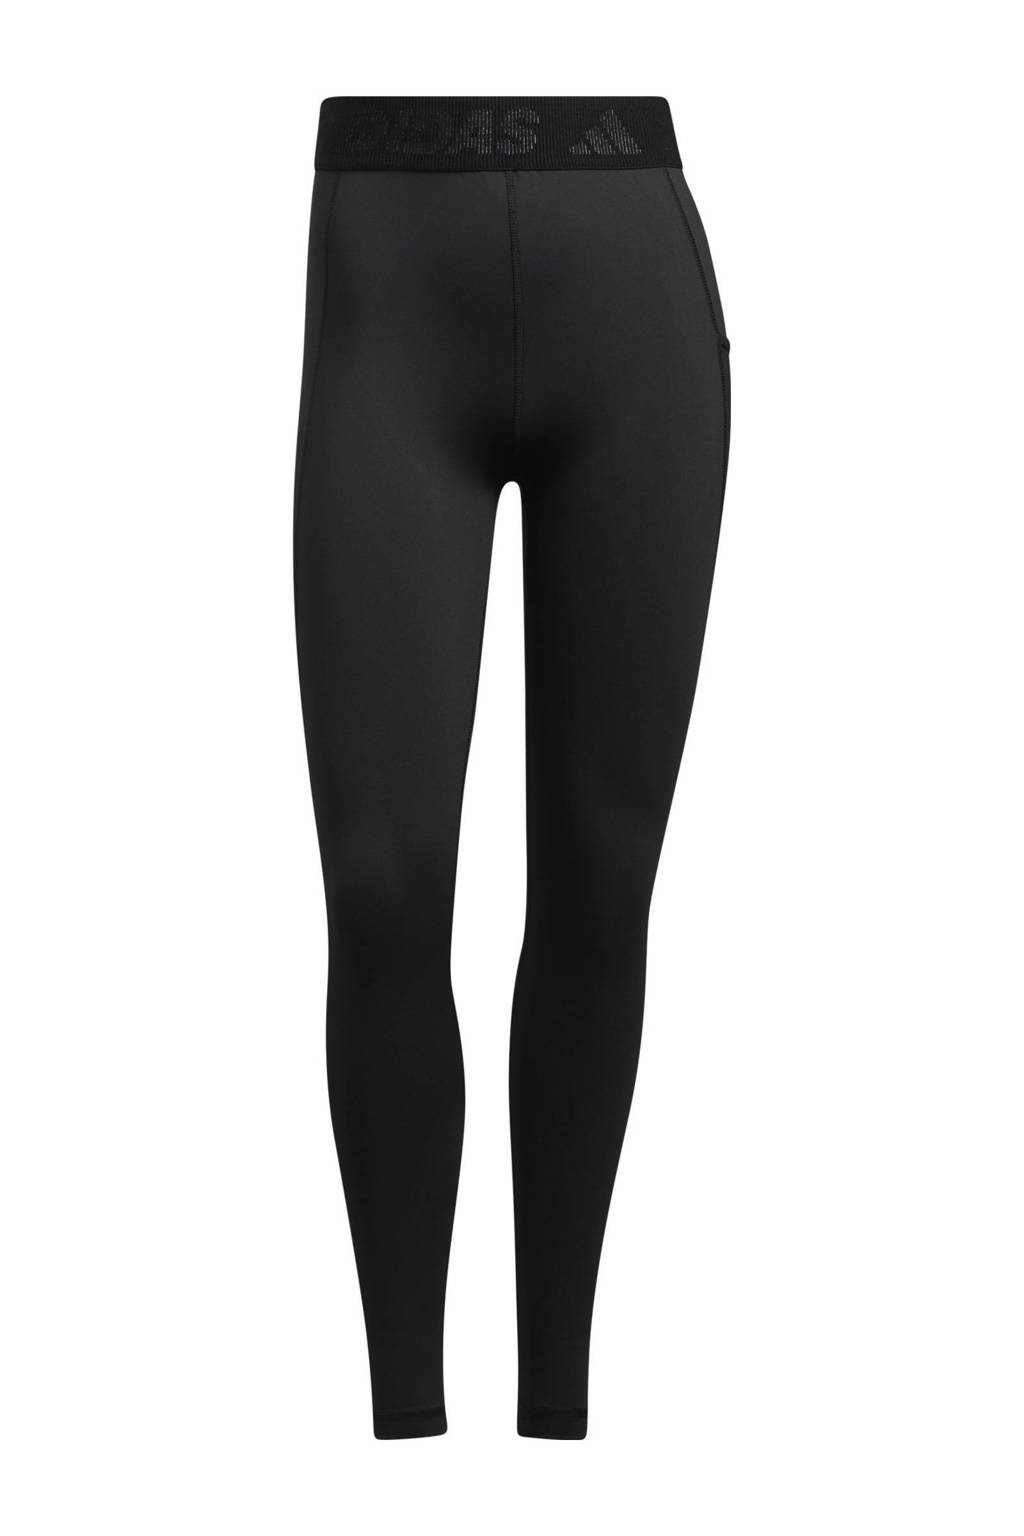 adidas Performance sportlegging zwart/wit, Zwart/wit